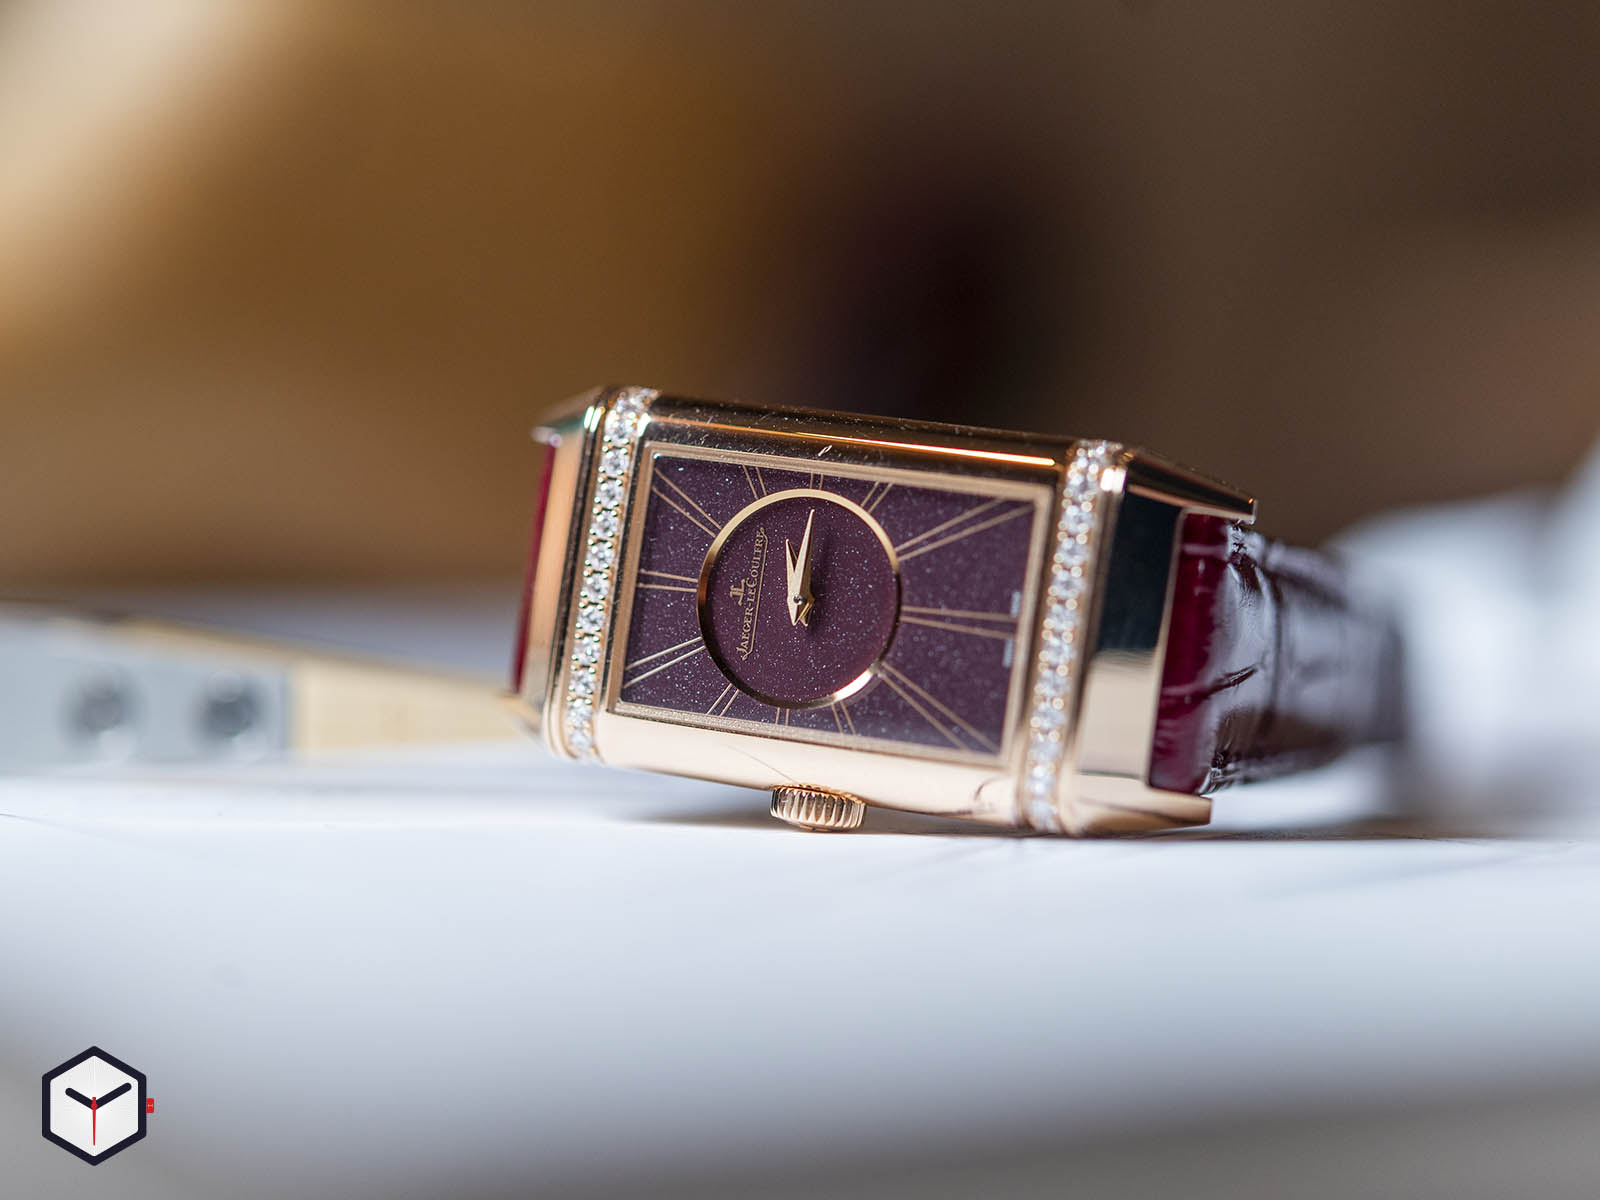 3342520-jaeger-lecoultre-reverso-one-duetto-sihh-2019-5.jpg